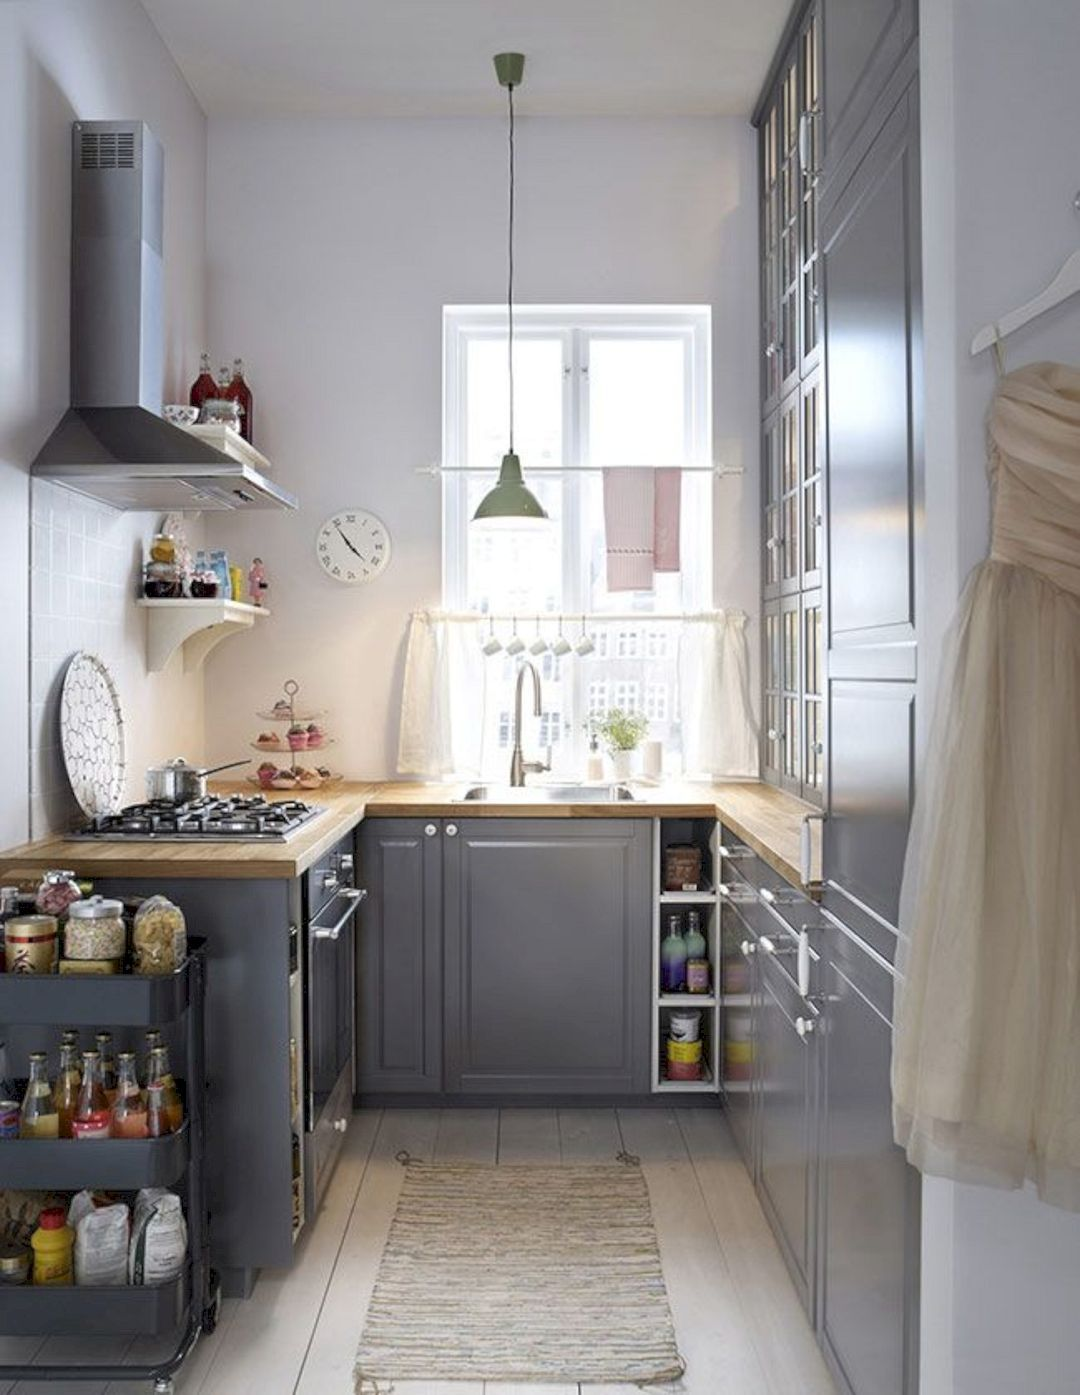 A Guide to Efficient Small Kitchen Design for Apartment